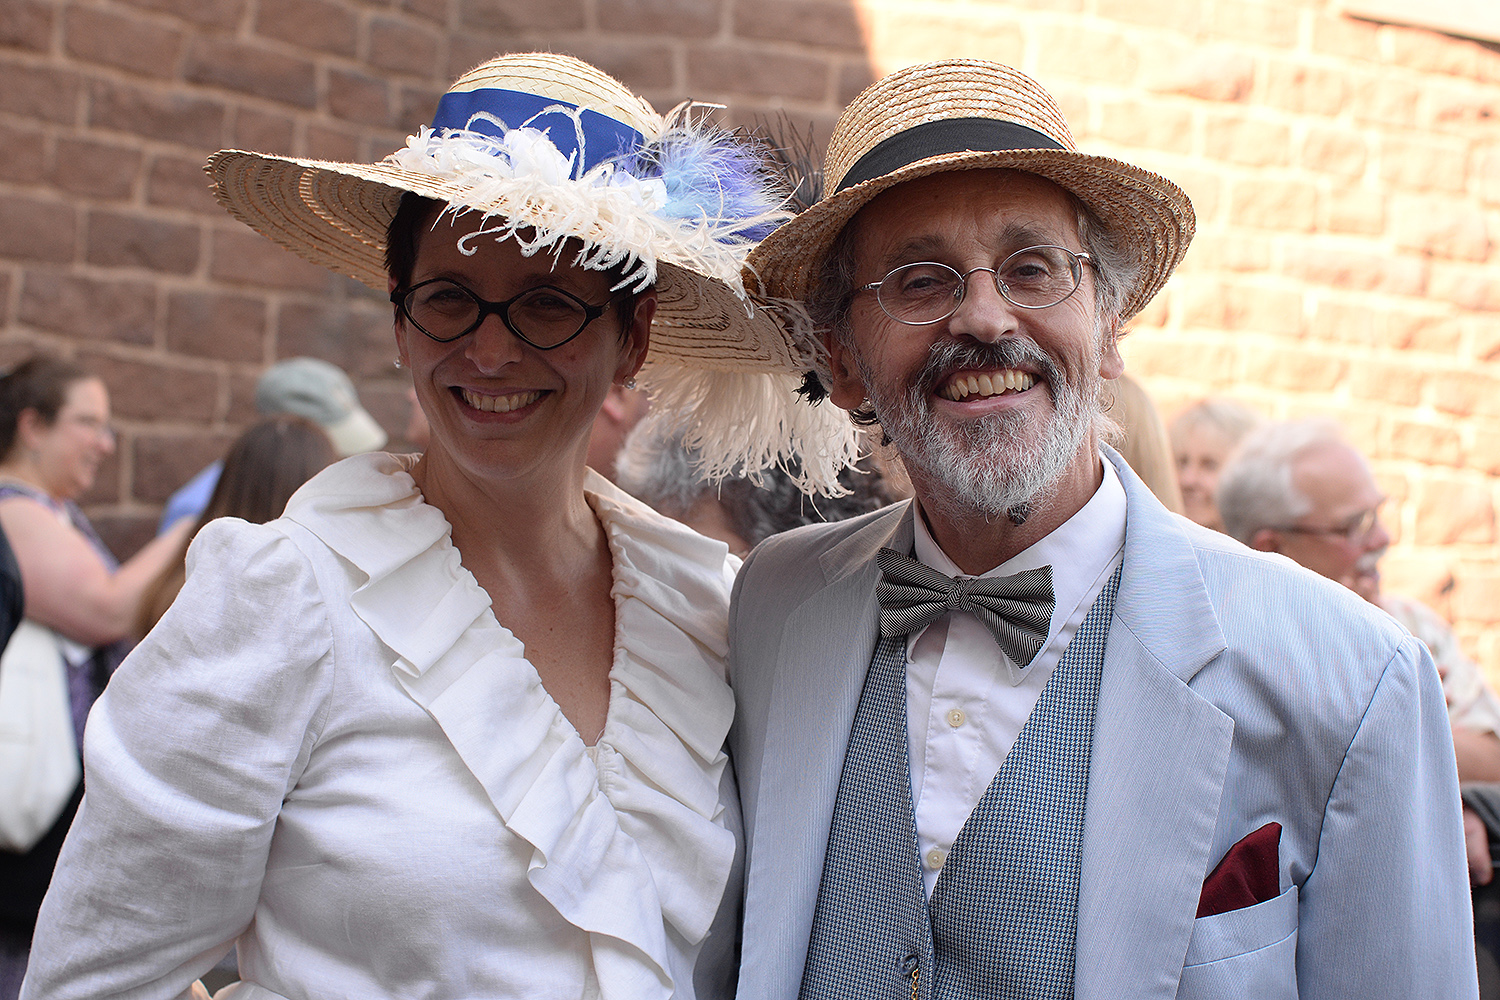 Ellen Nerenberg, dean of the arts and humanities, the Hollis Professor of Romance Languages and Literatures, and Lutz Huwel, professor of physics, dressed in period costume.